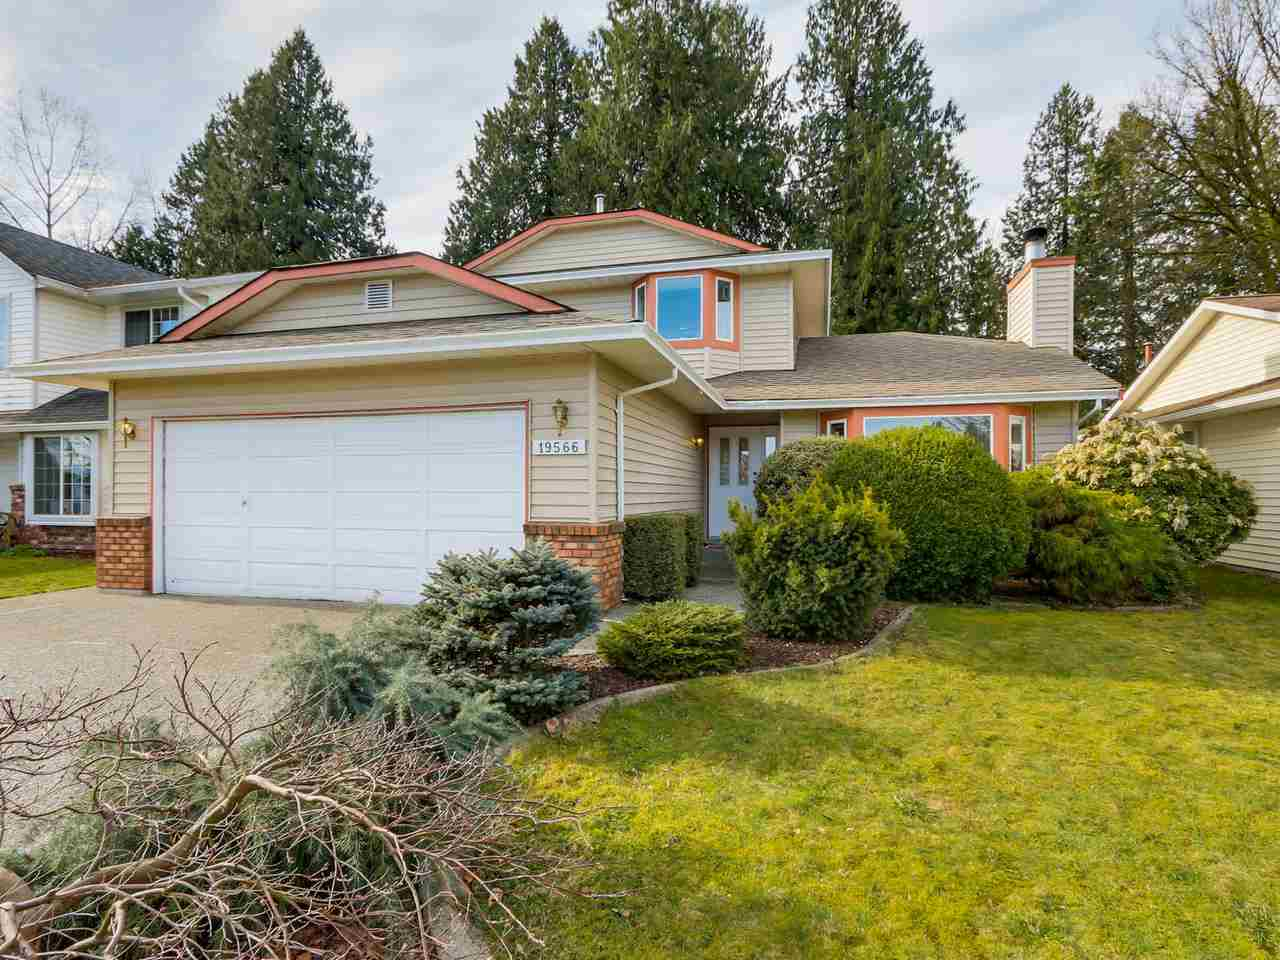 Main Photo: 19566 PARK ROAD in Pitt Meadows: Mid Meadows House for sale : MLS®# R2047749